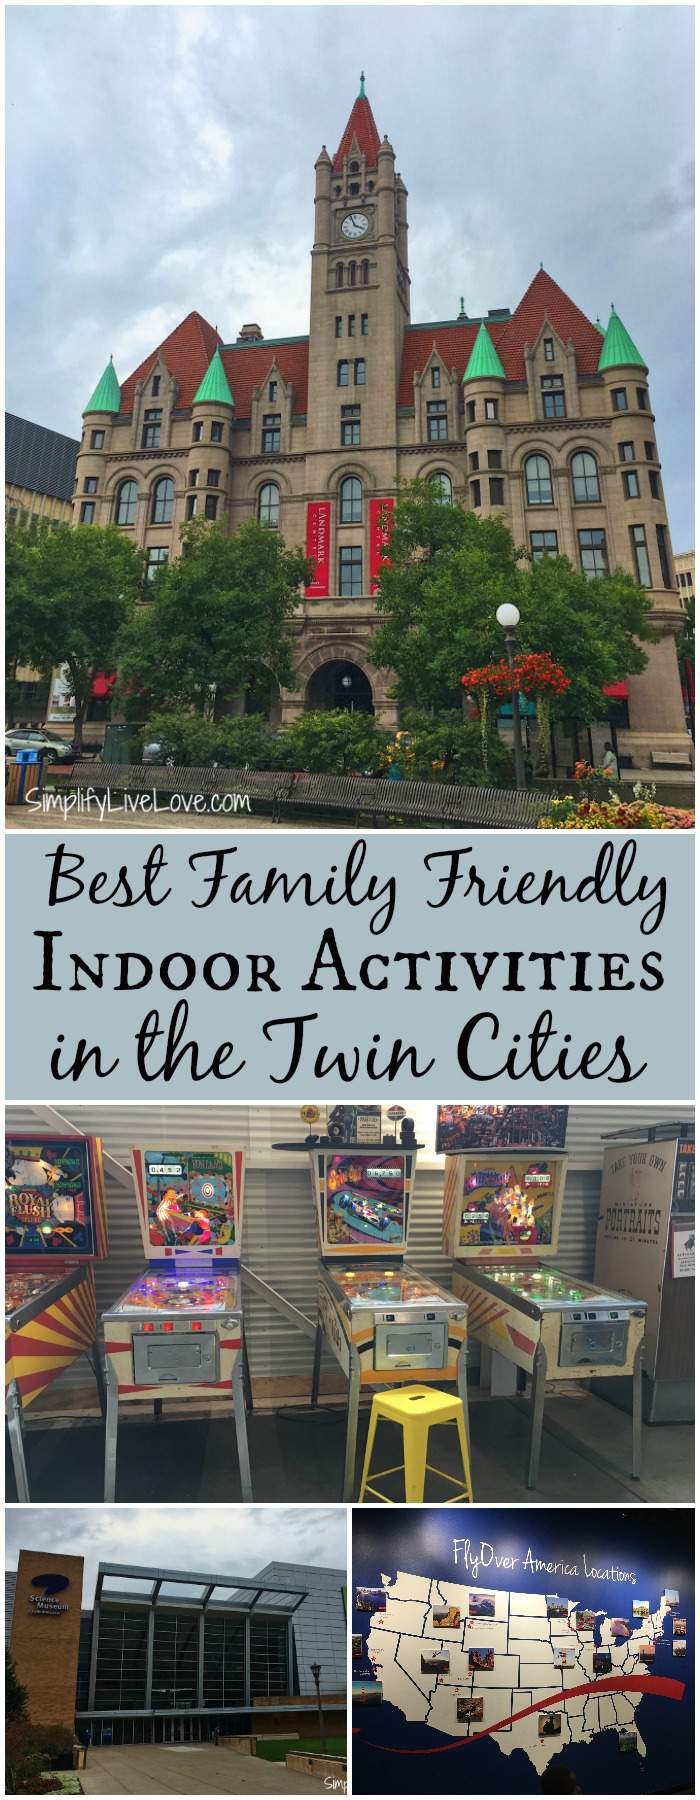 Looking for family friendly indoor activities in the Twin Cities? Look no further. Your older kids and fun loving adults will enjoy everything on this list! A lot of the activities are free and they're all perfect for cold or rainy weather.